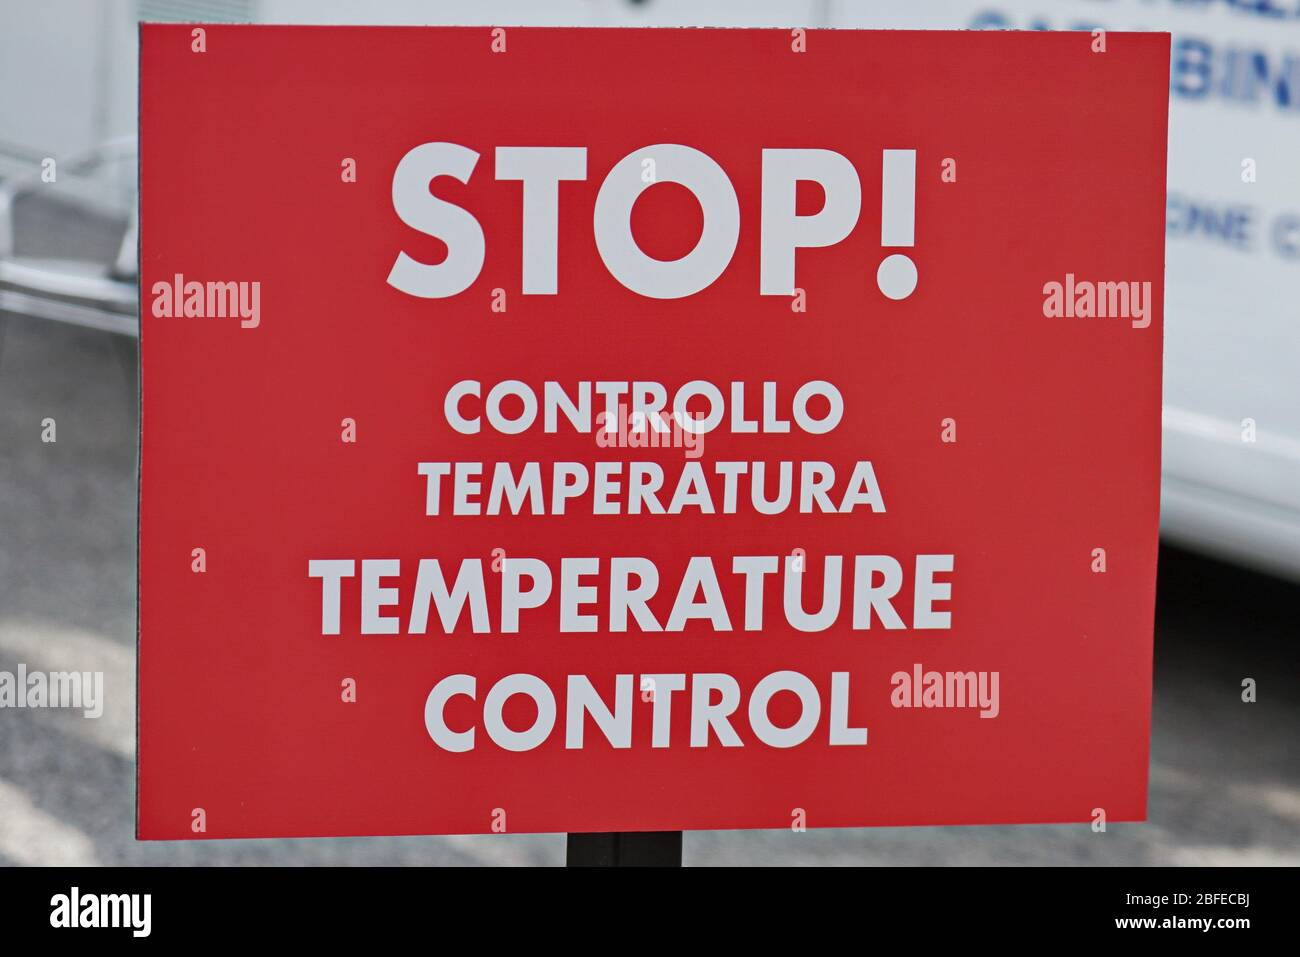 Page 21   Temperature Control High Resolution Stock Photography and ...